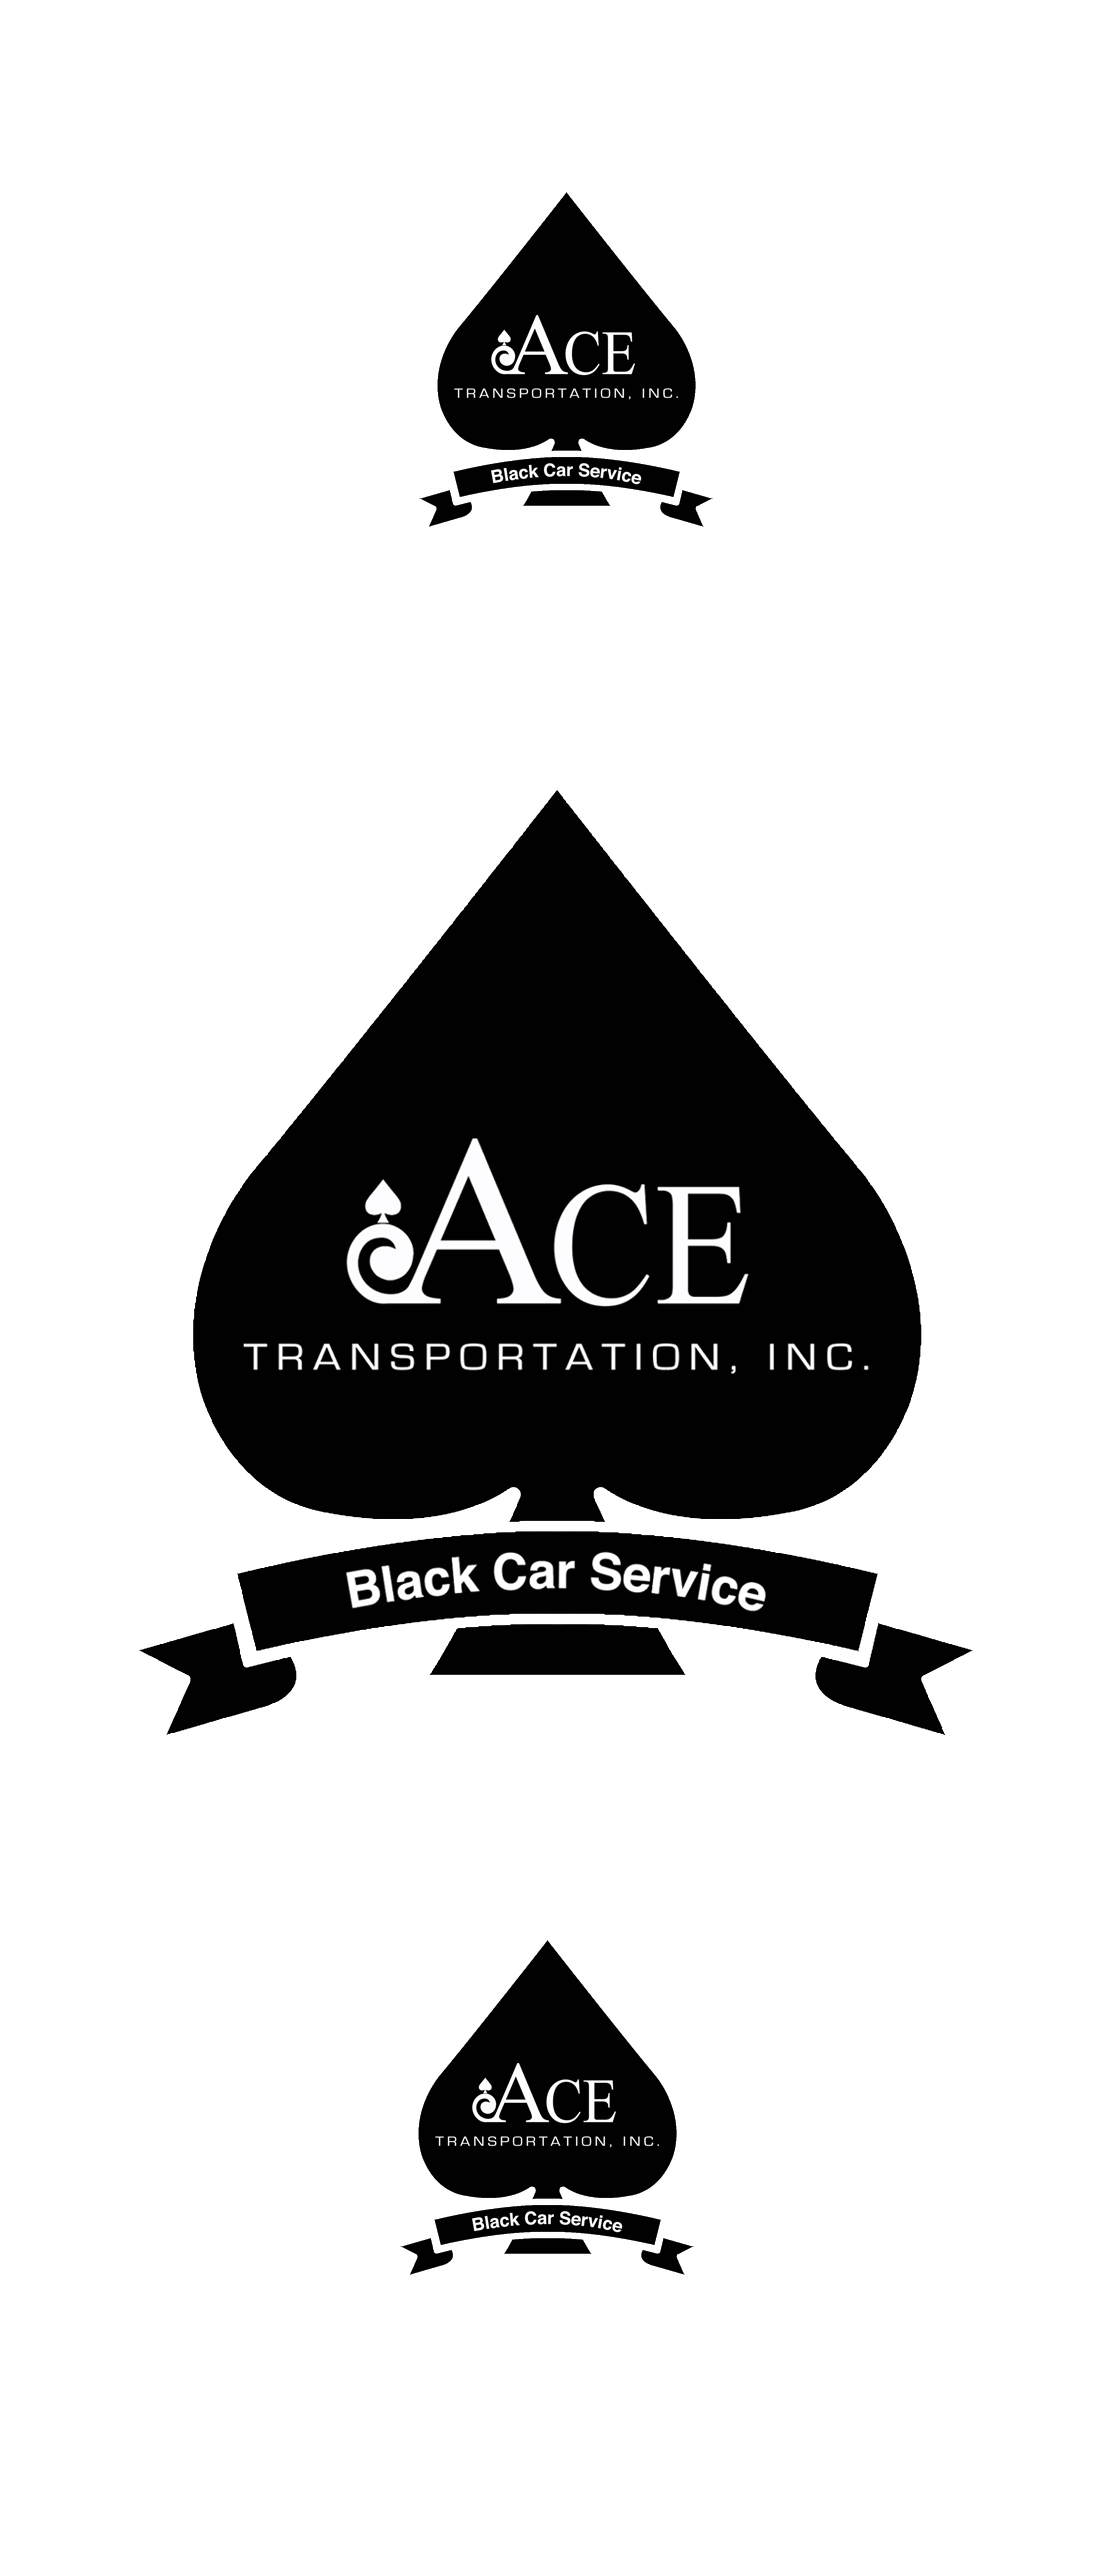 Ace transportation